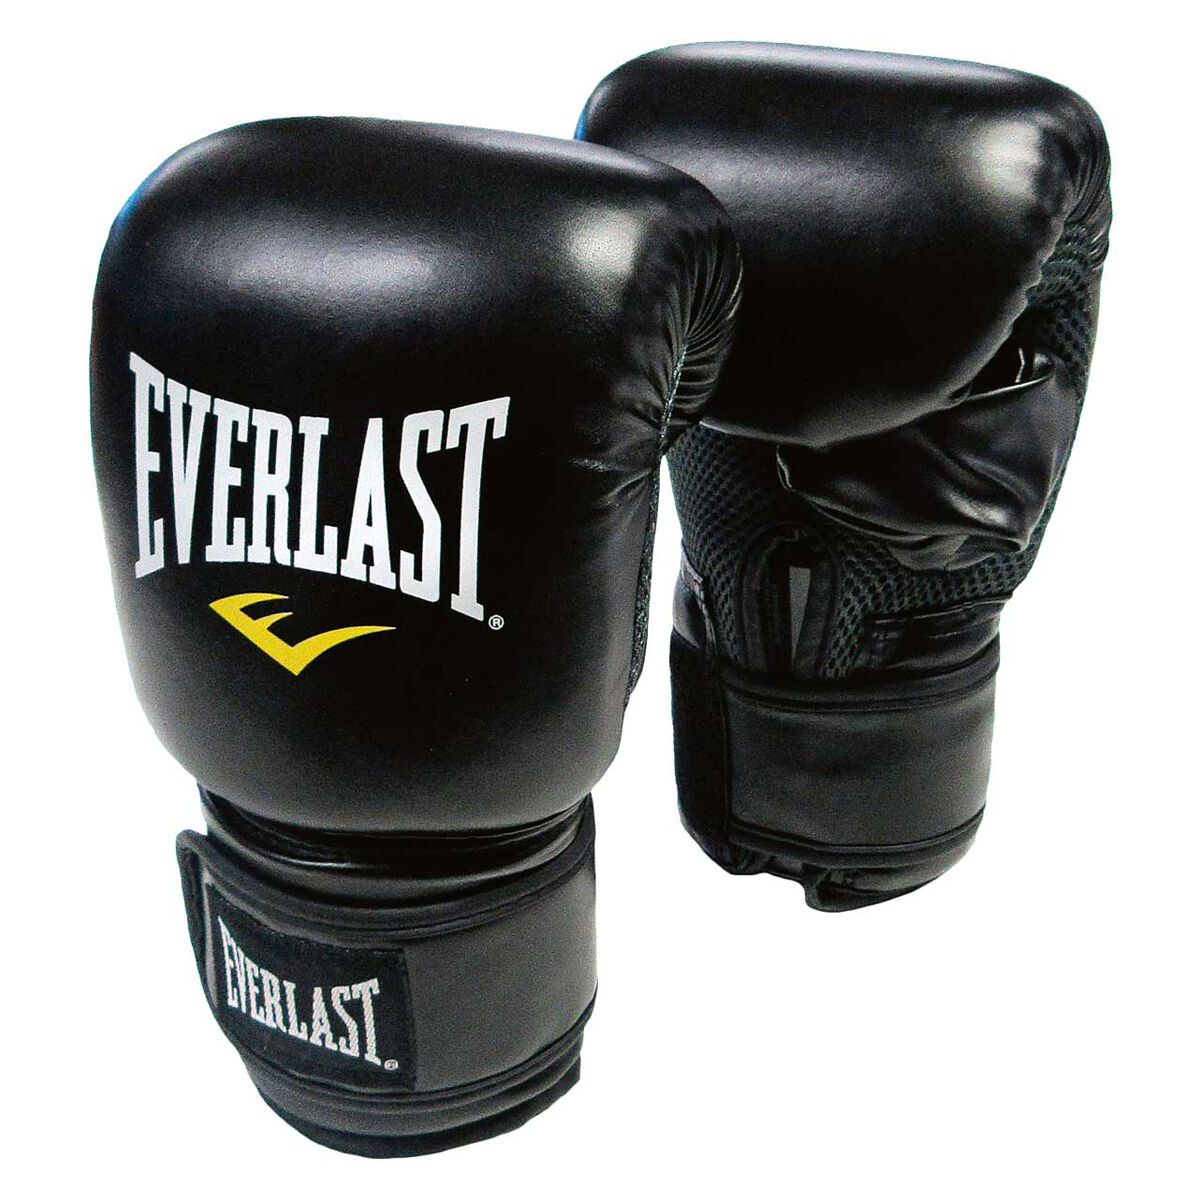 Everlast boxing bag and Adidas boxing gloves | Boxing